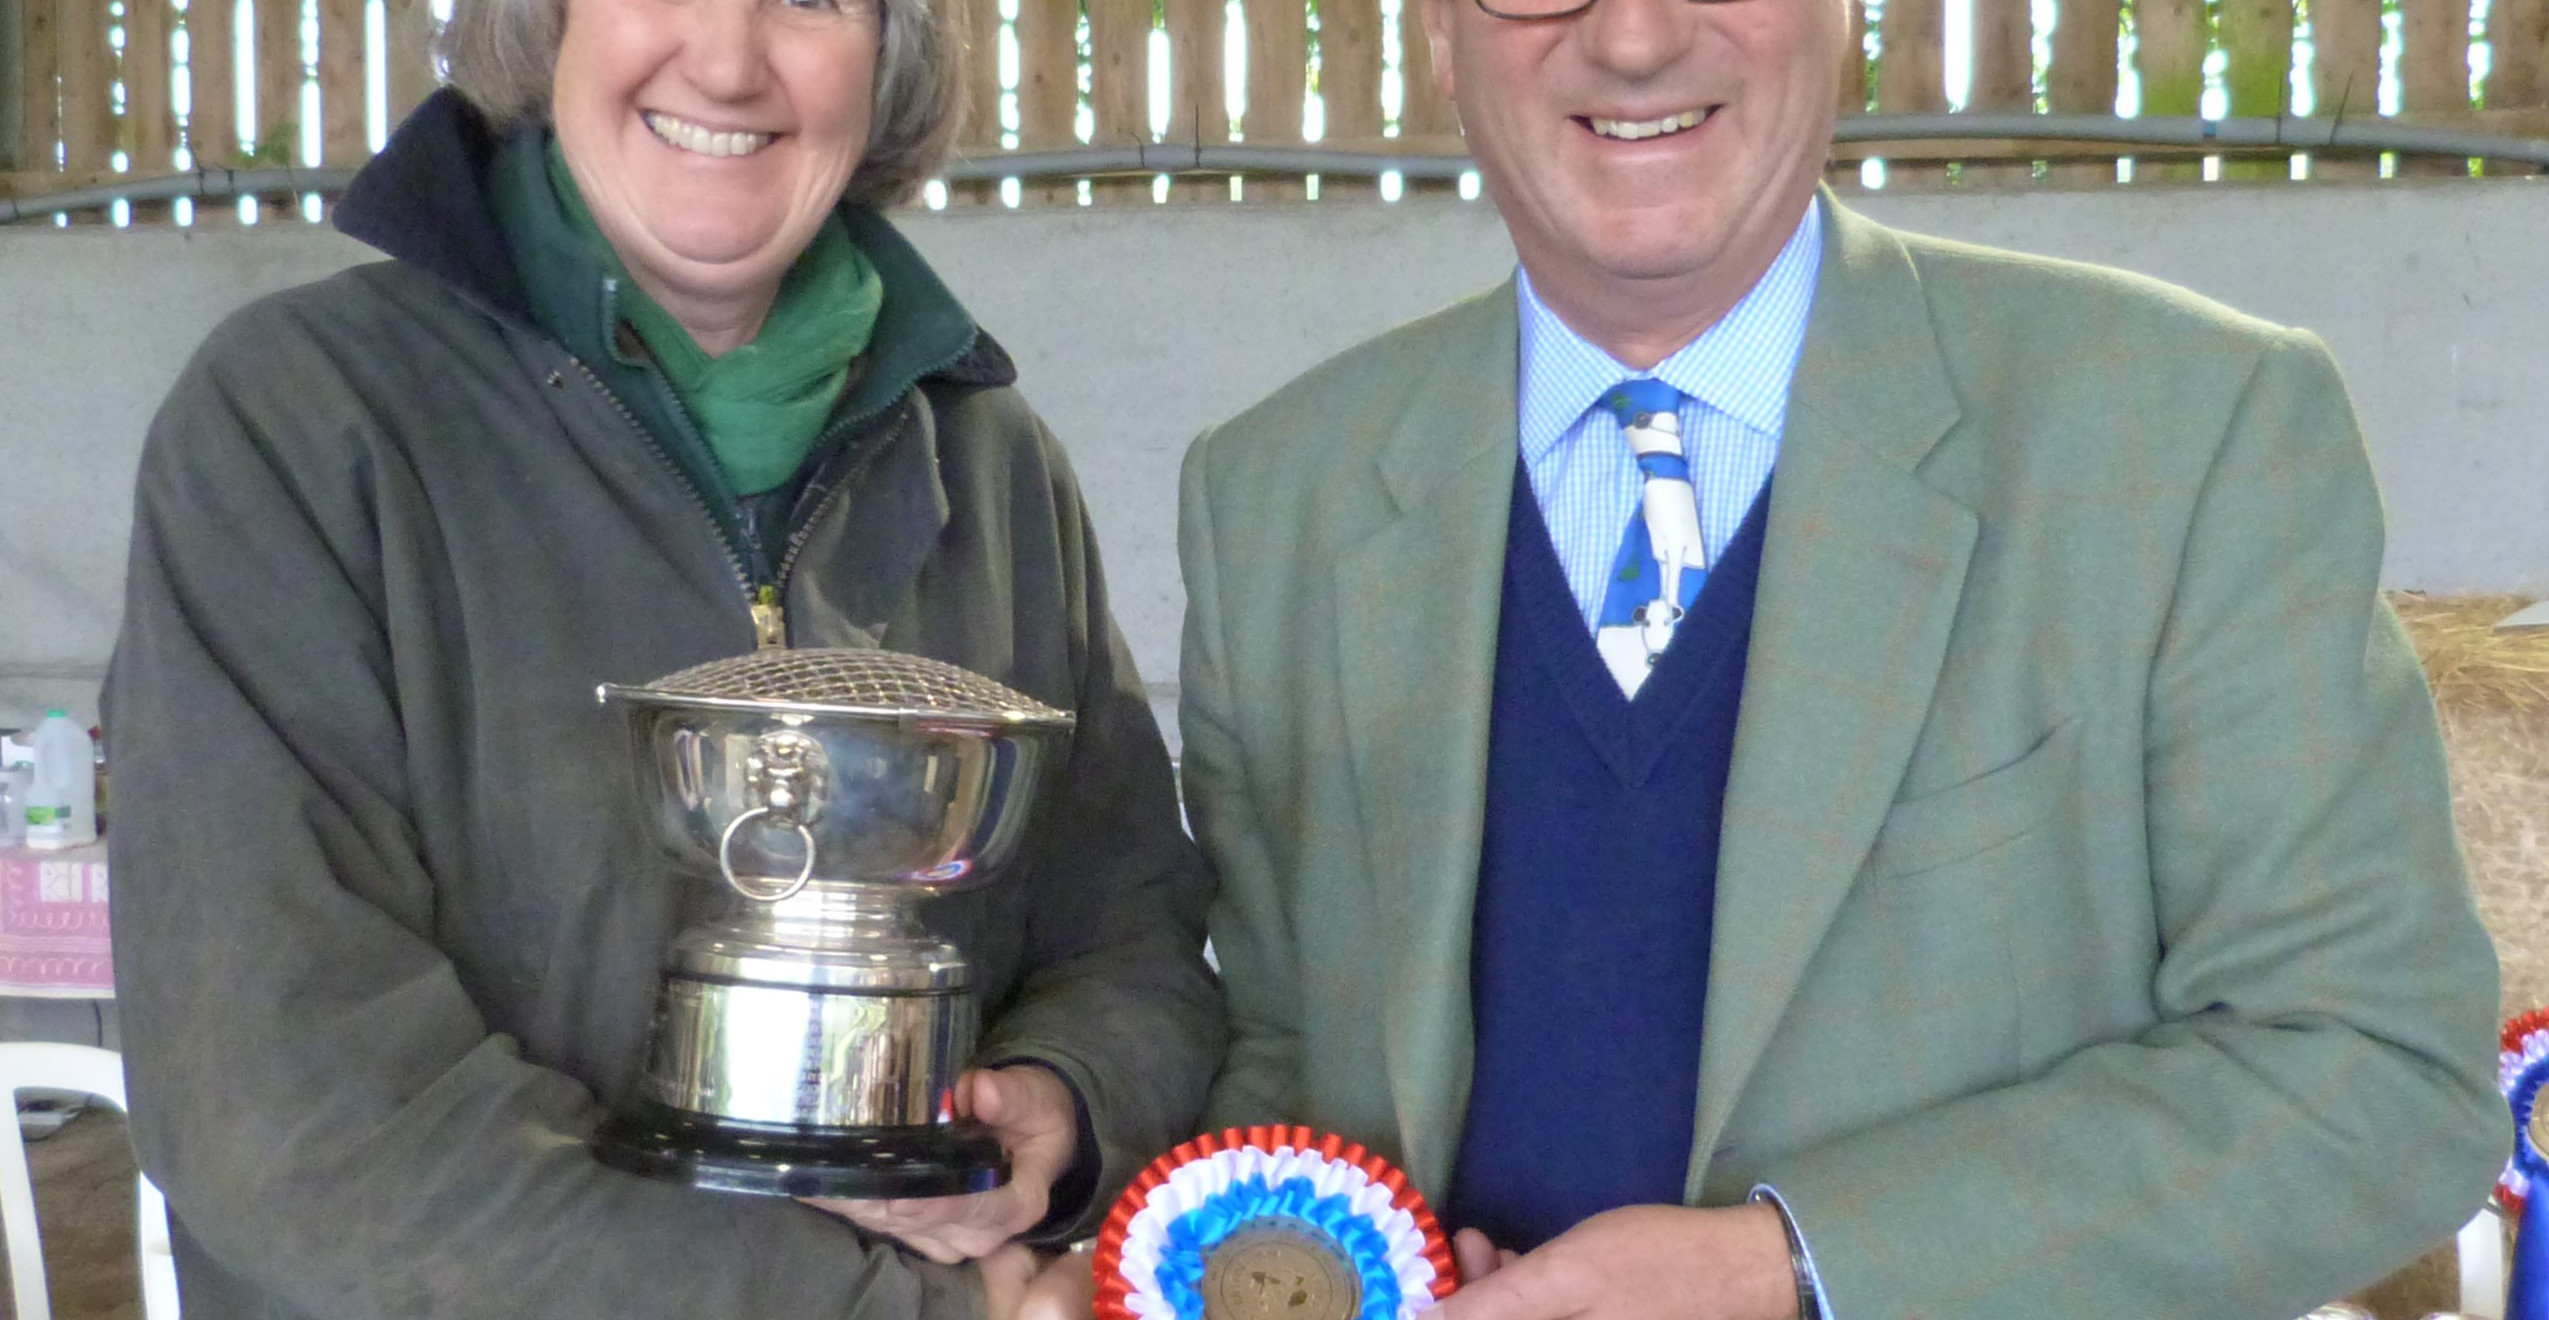 Bull of the Year is won by Dr Vivien St Joseph with Tollesbury Sir Lionel